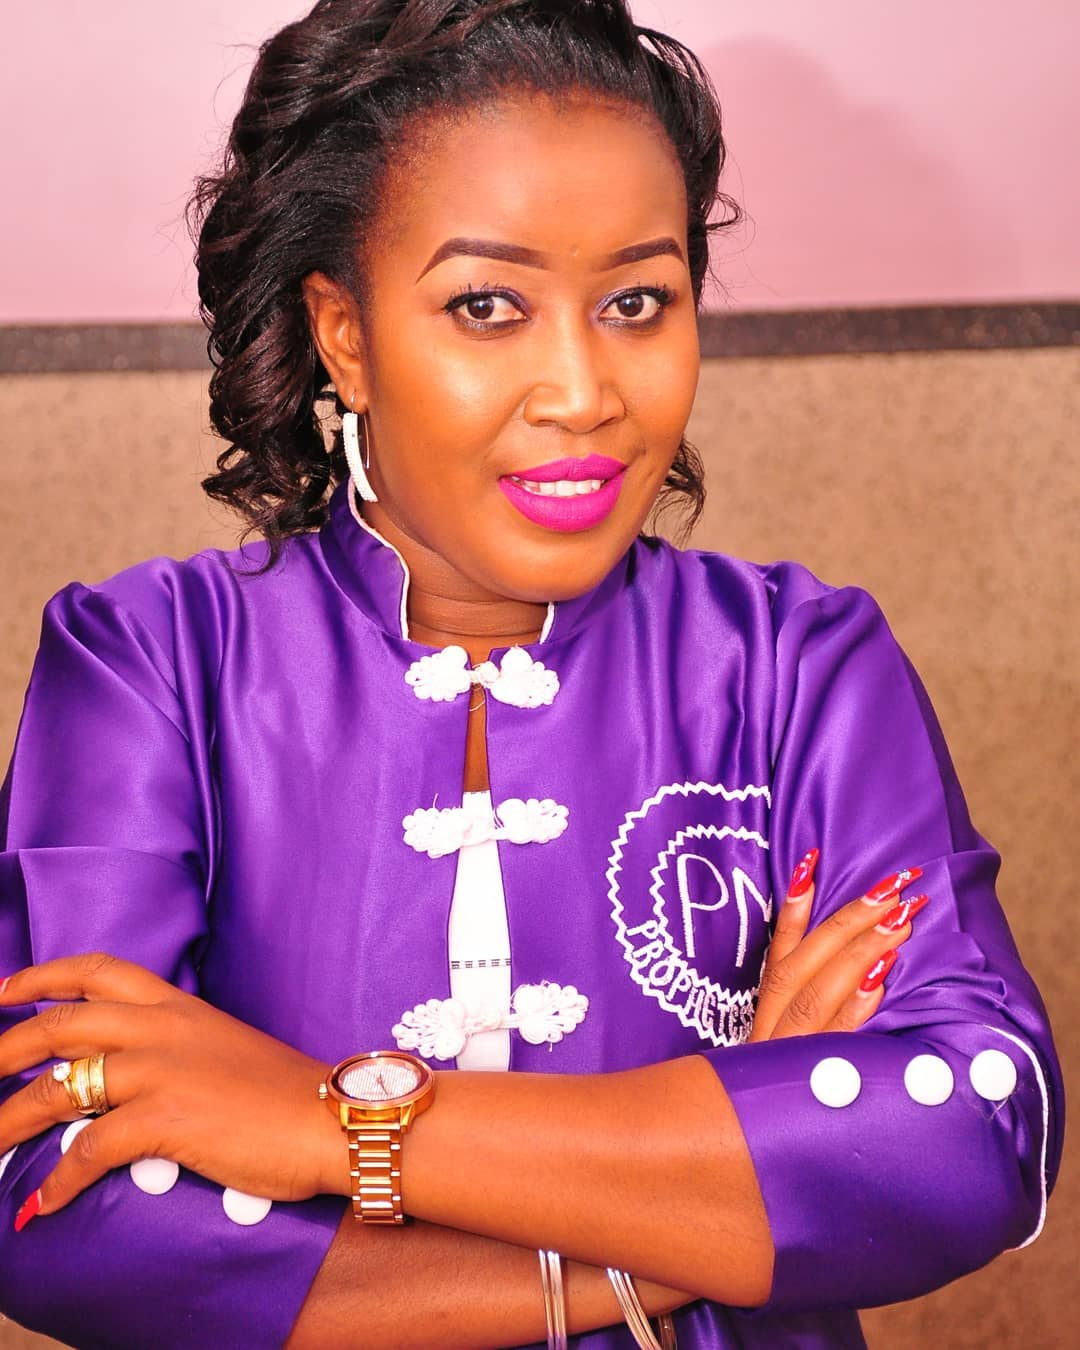 40034198 153654108890987 9071155519312769137 n - Mrembo wa Yesu! Check out photos of Prophetess Monicah's unique dress code